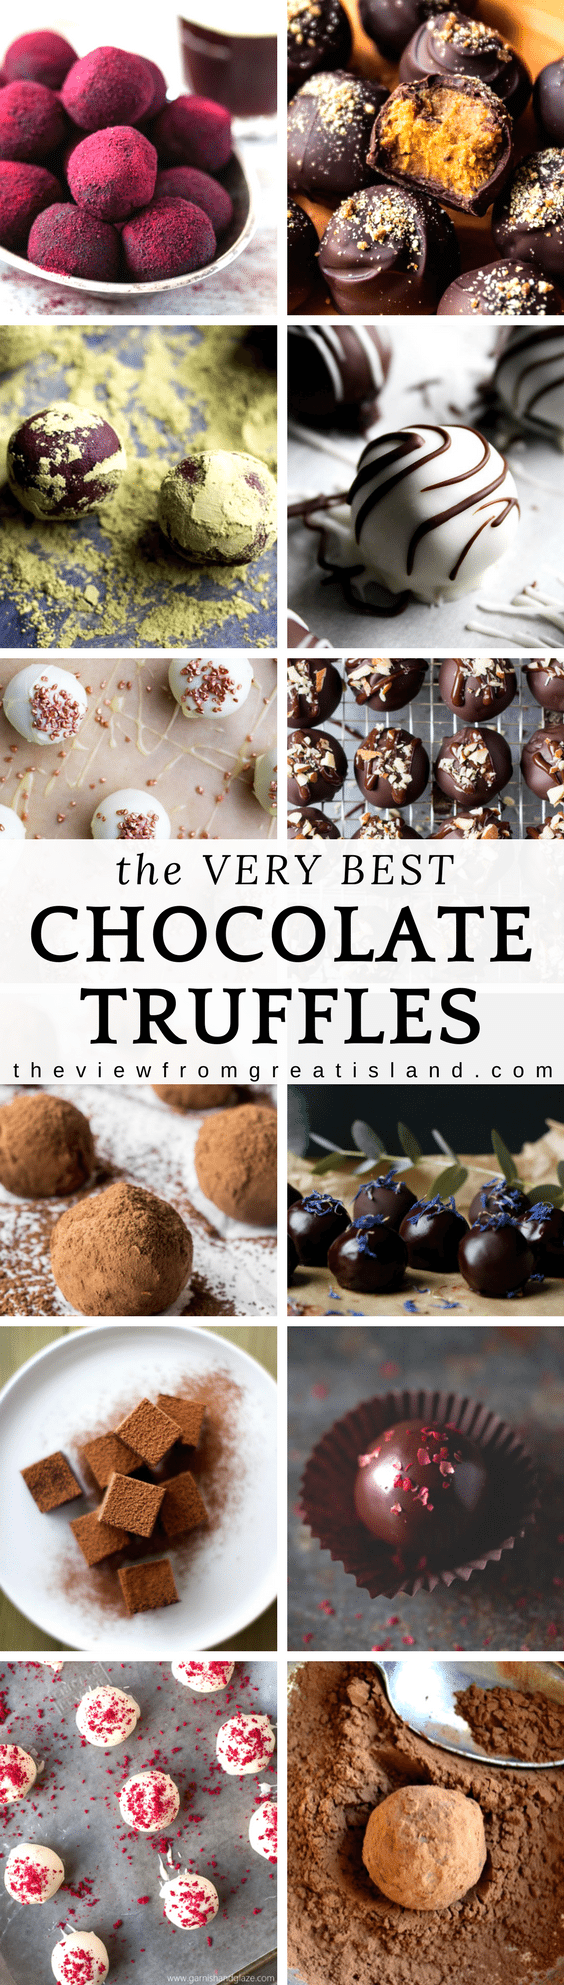 Easy homemade chocolate truffles that anyone can make and everyone loves! Truffles made the perfect gift from your kitchen! #truffles #chocolate #candy #foodgift #easydessert #darkchocolate #whitechocolate #Christmas #holidaydessert #homemadecandy #ganache #trufflerecipe #easytrufflerecipe